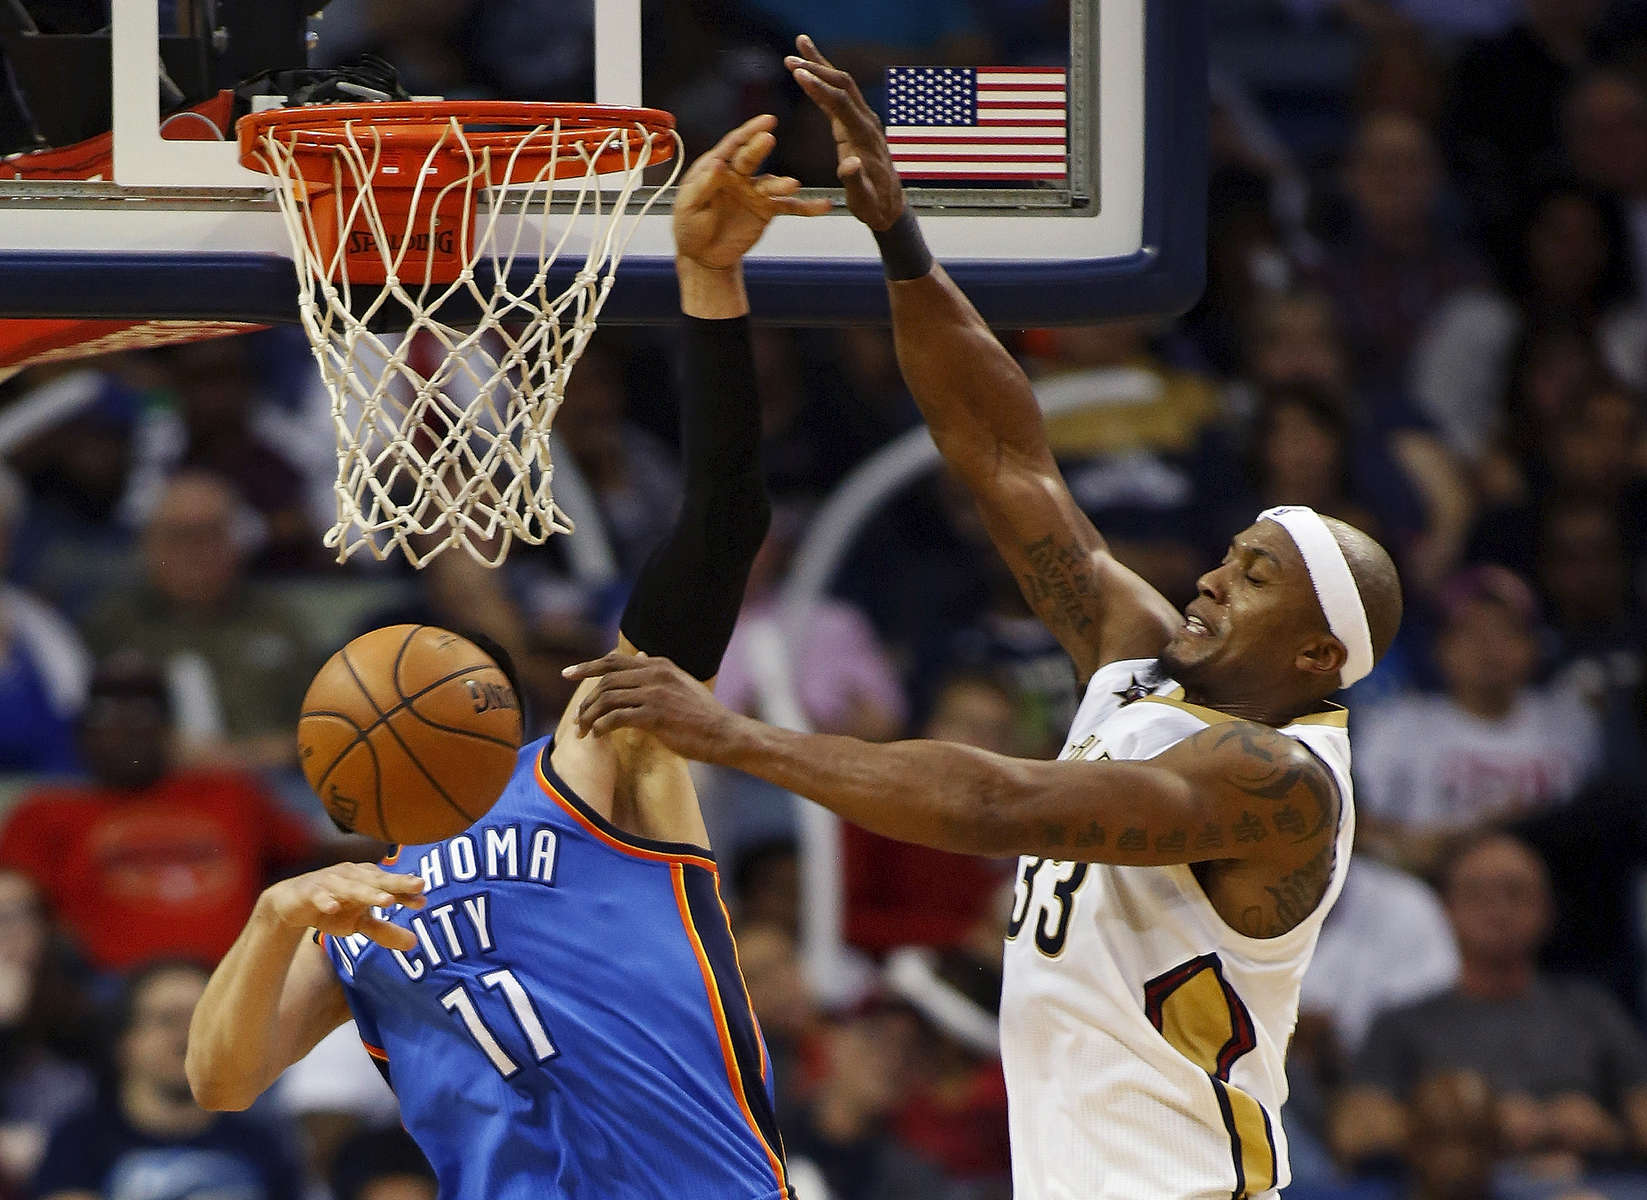 New Orleans Pelicans forward Dante Cunningham, right, blocks an attempted layup by Oklahoma City Thunder center Enes Kanter (11) in the second half of an NBA basketball game in New Orleans, Wednesday, Jan. 25, 2017. The Thunder won 114-105. (AP Photo/Max Becherer)